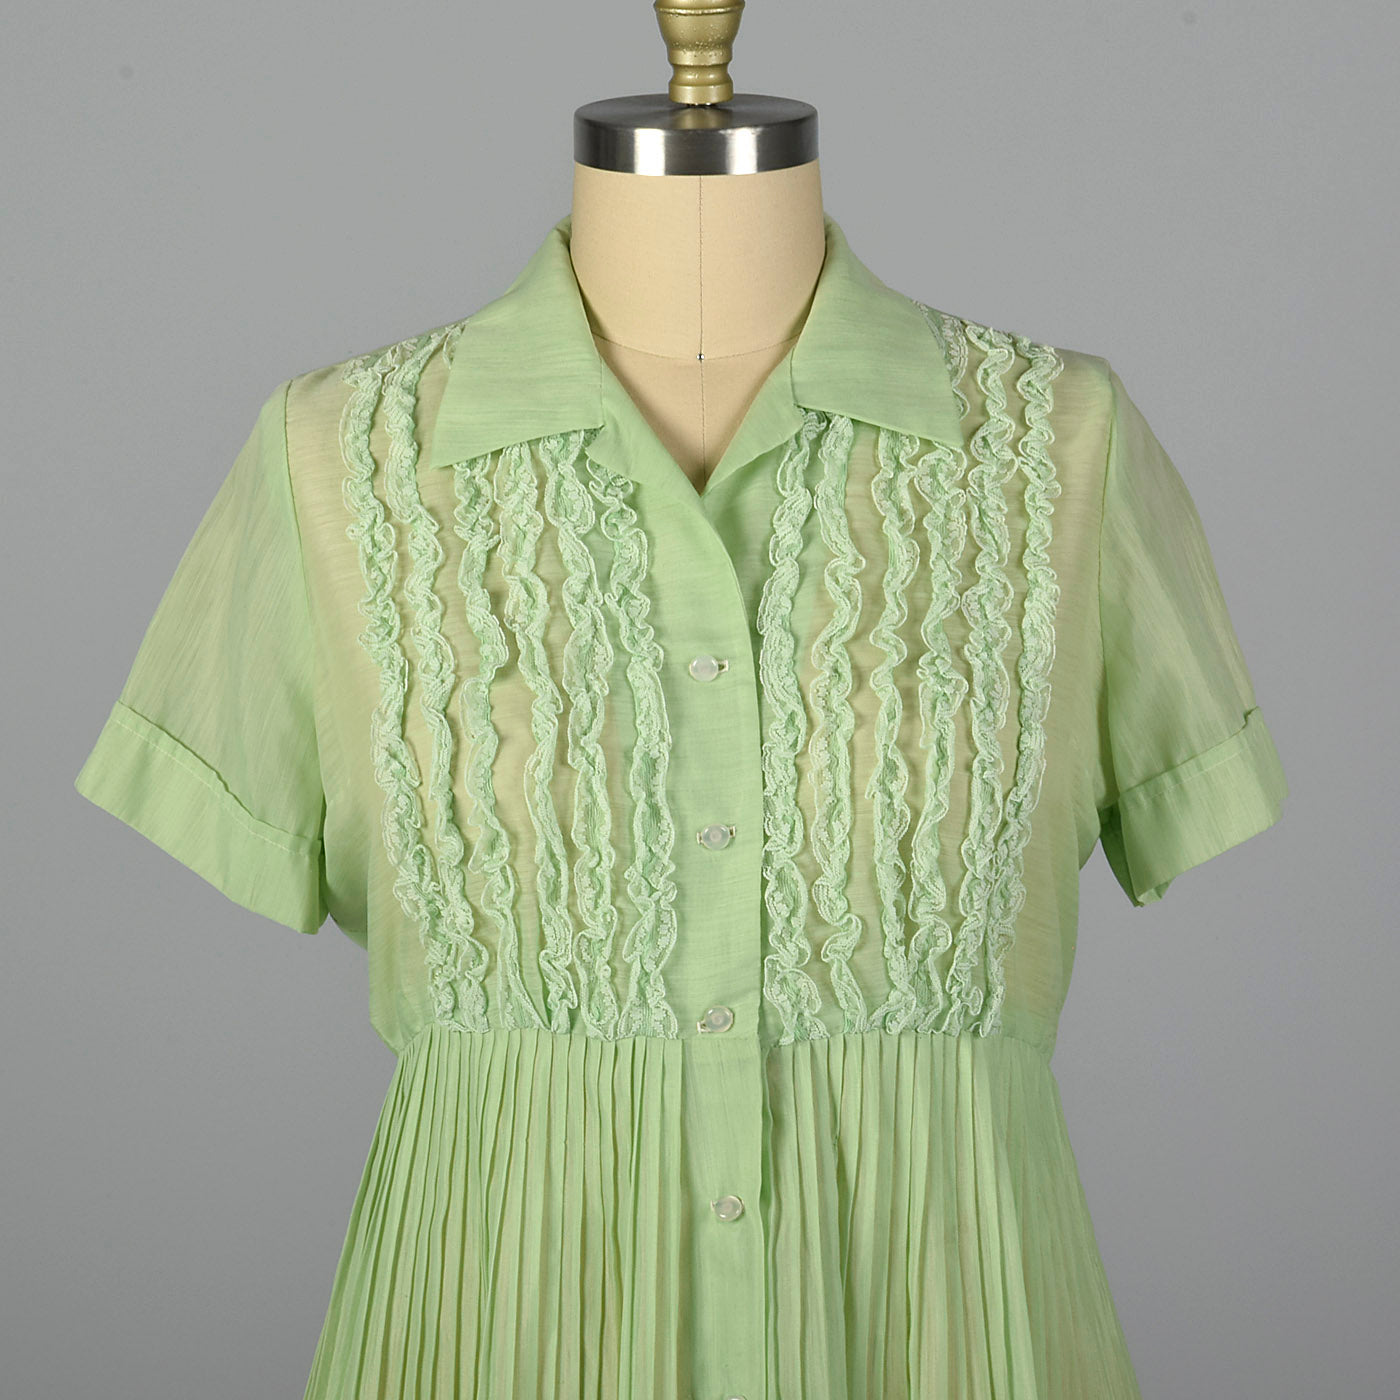 1950s Sheer Green Dress with Ruffle Bodice